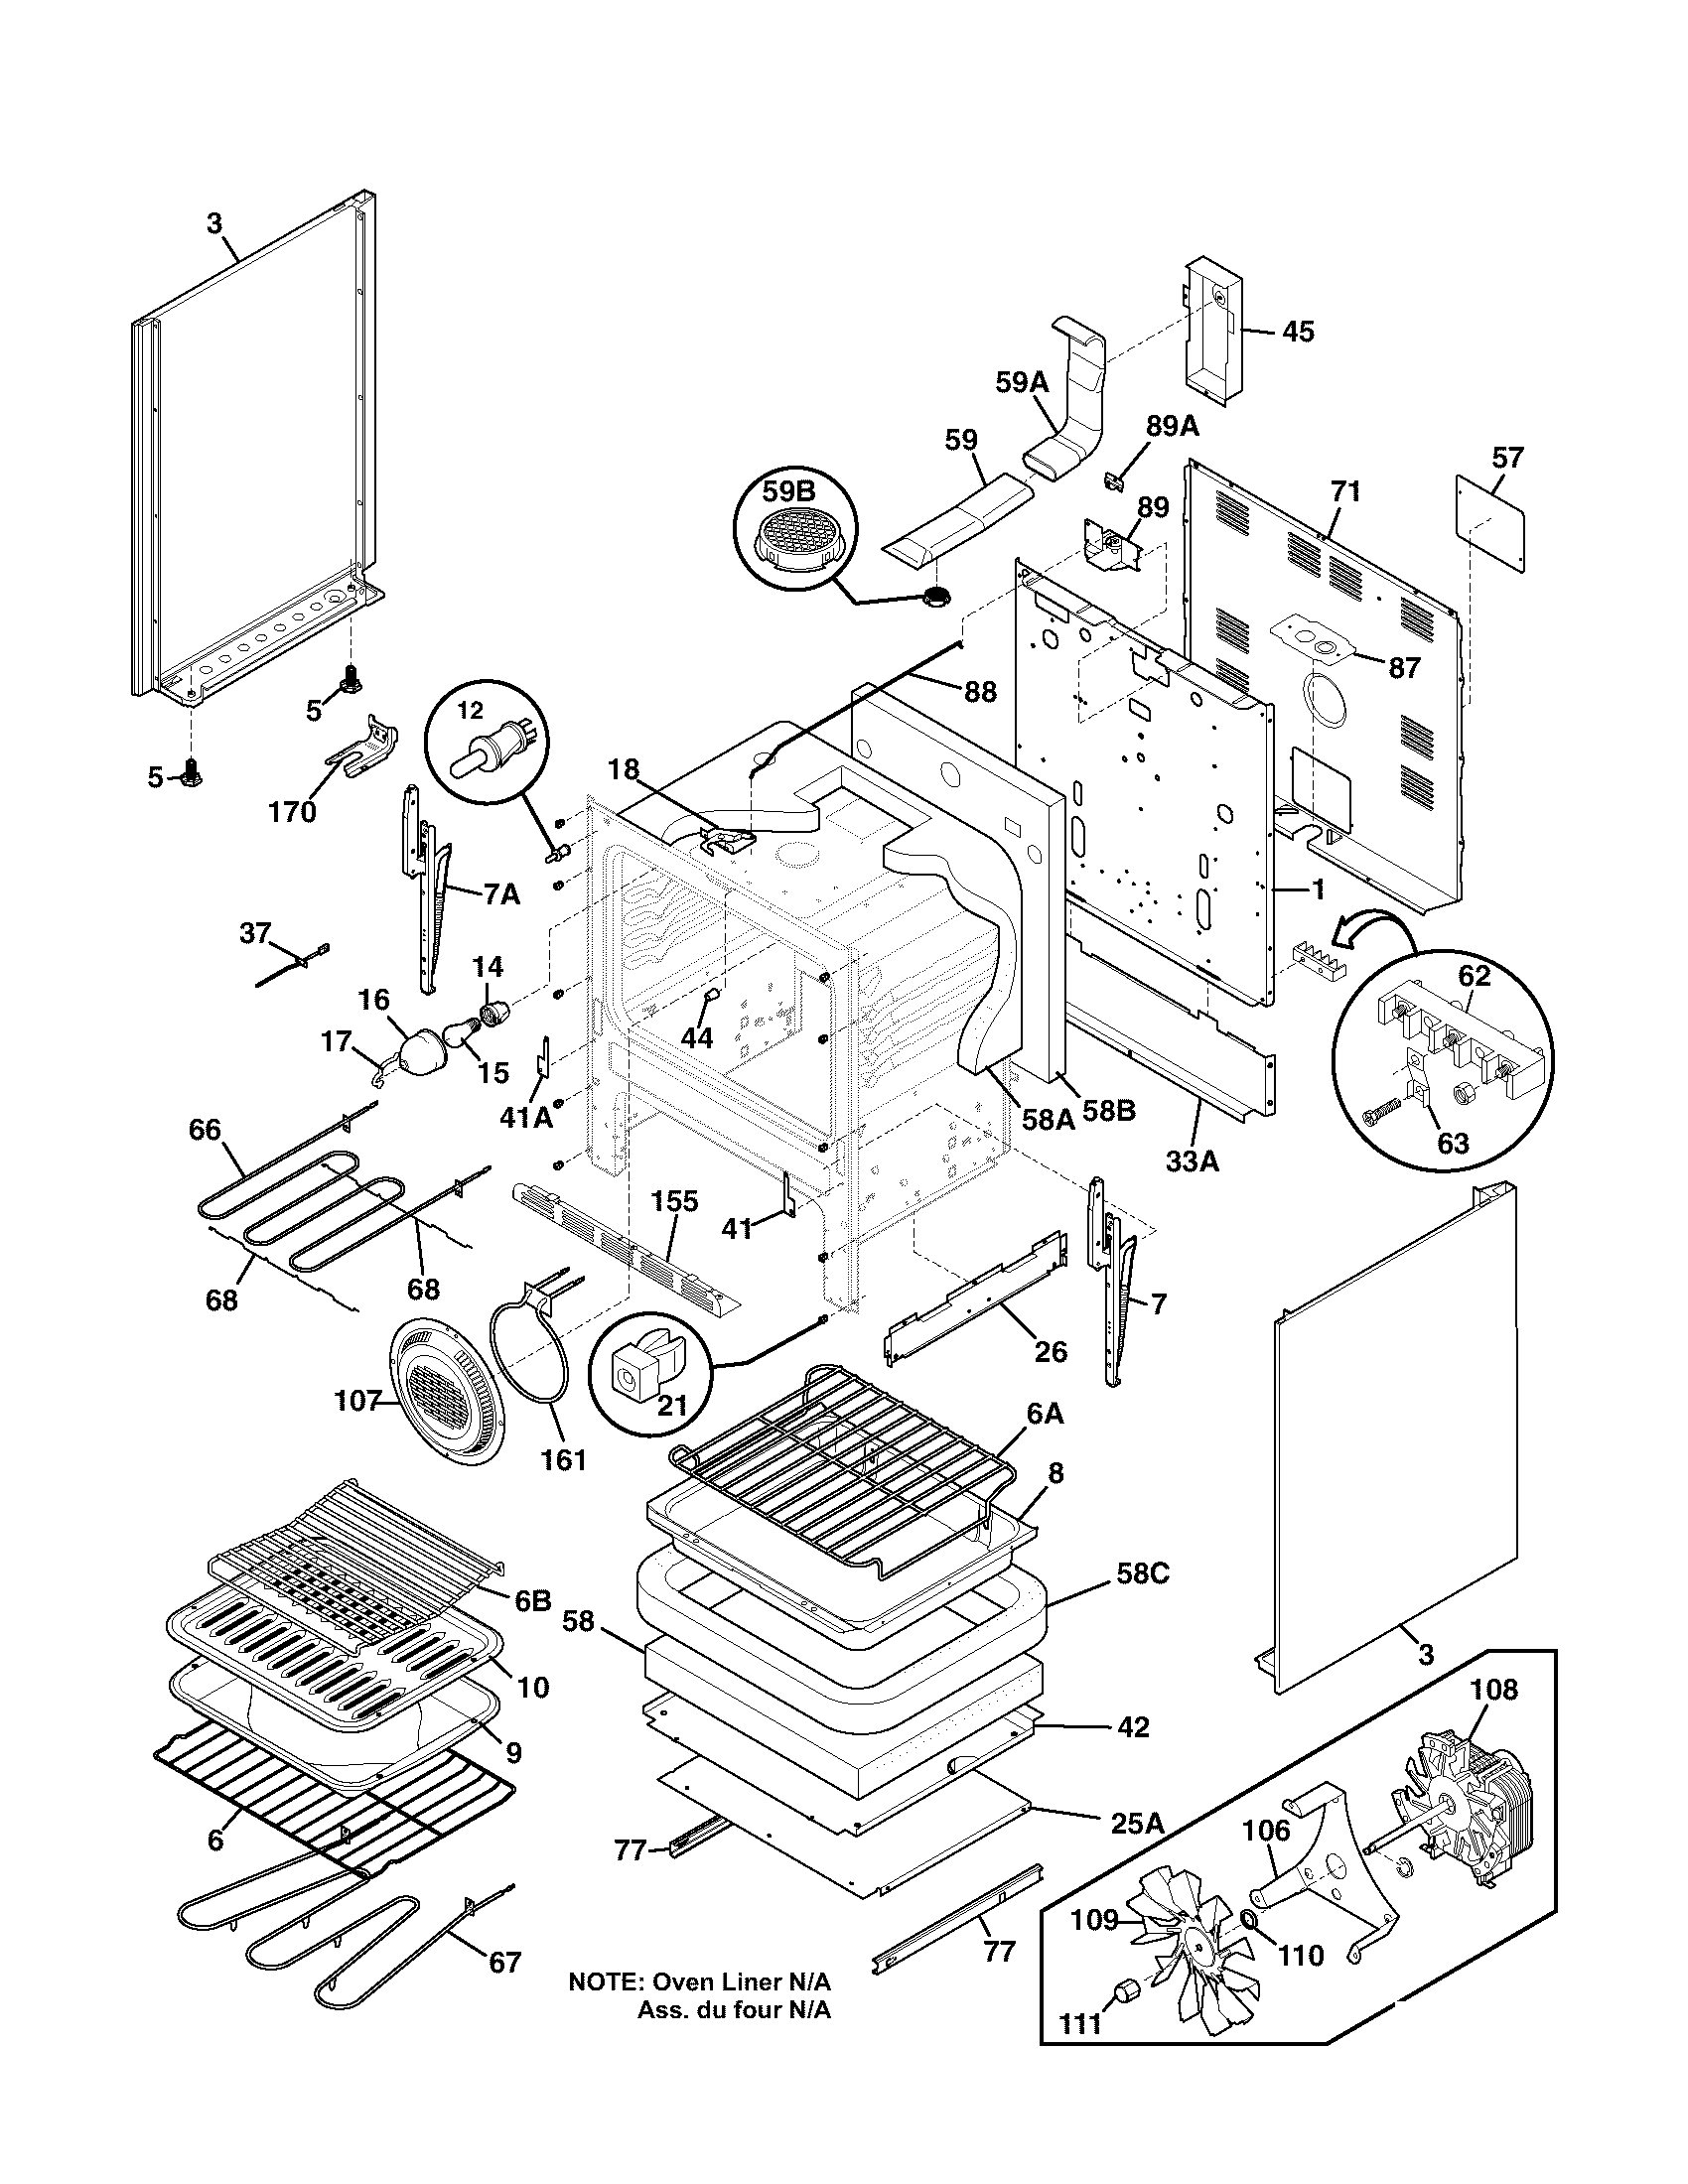 wiring diagram for frigidaire air conditioner with Wiring Diagram E1eb 015ha on Goldstar Air Conditioner Wiring Diagrams together with Kitchenaid Dryer Wiring Diagram as well Washing Machine Wiring Diagram Pdf also Electric Furnace Wiring Diagrams E2eb 015ha additionally Freezer Thermostat Wiring Diagram.